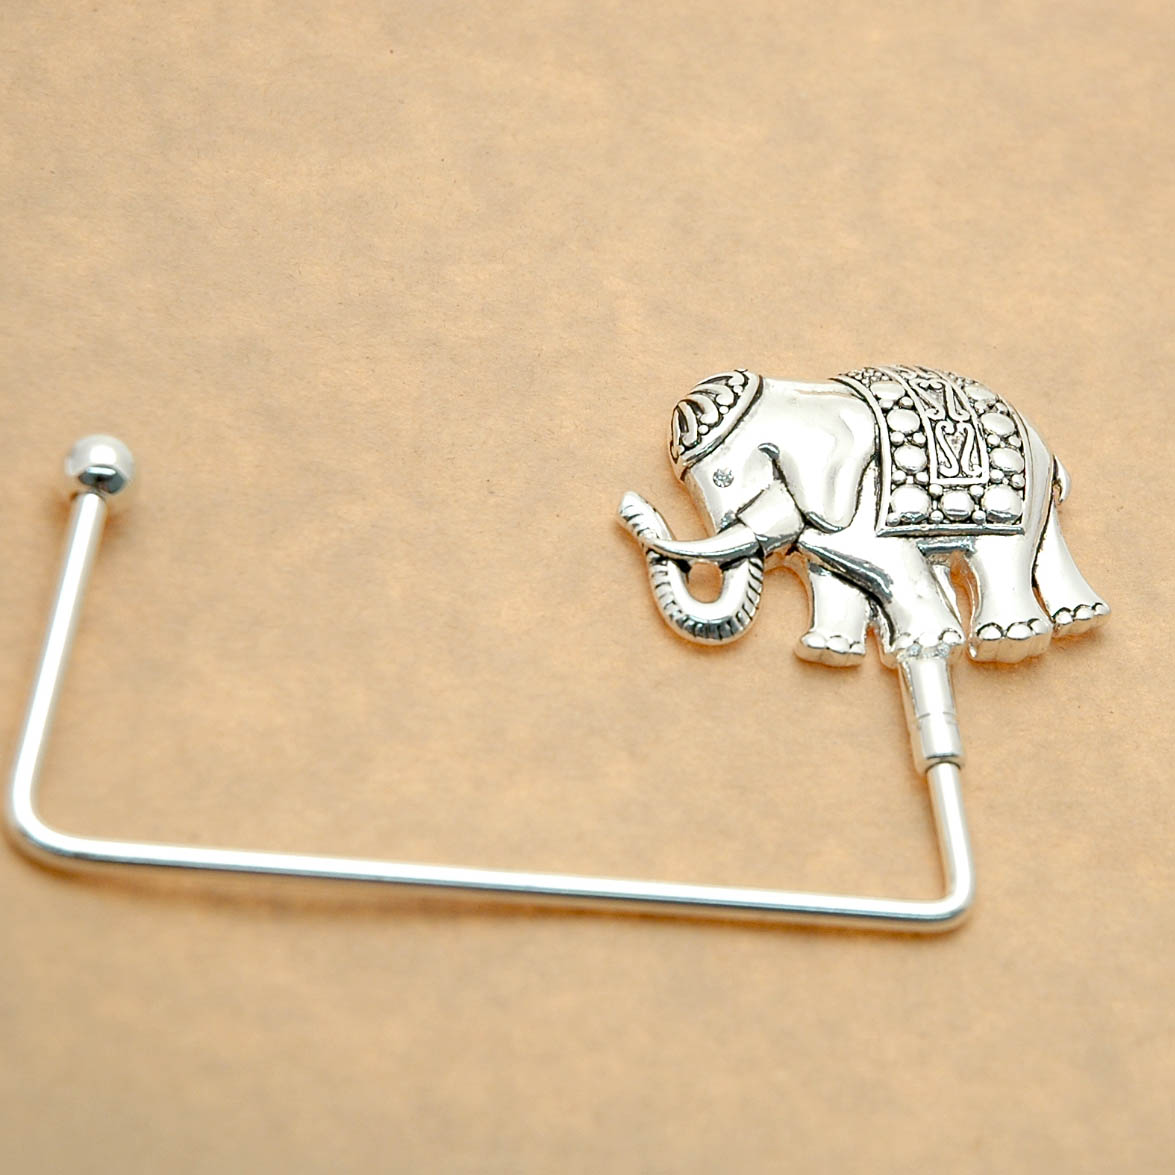 Elephant Purse Hanger